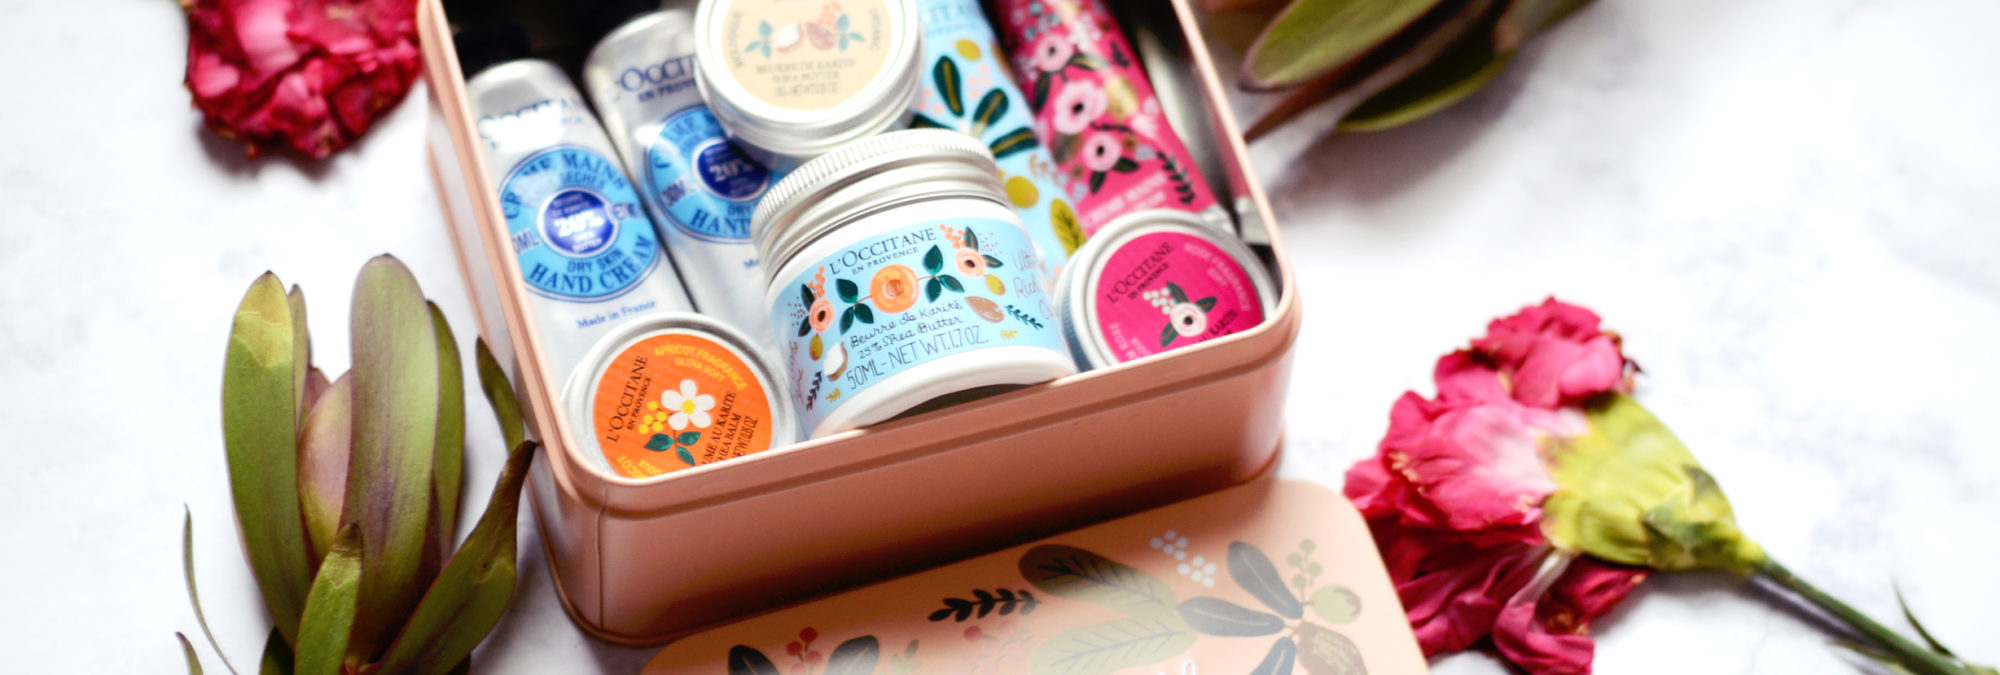 Introducing Rifle Paper Co. for L'Occitane